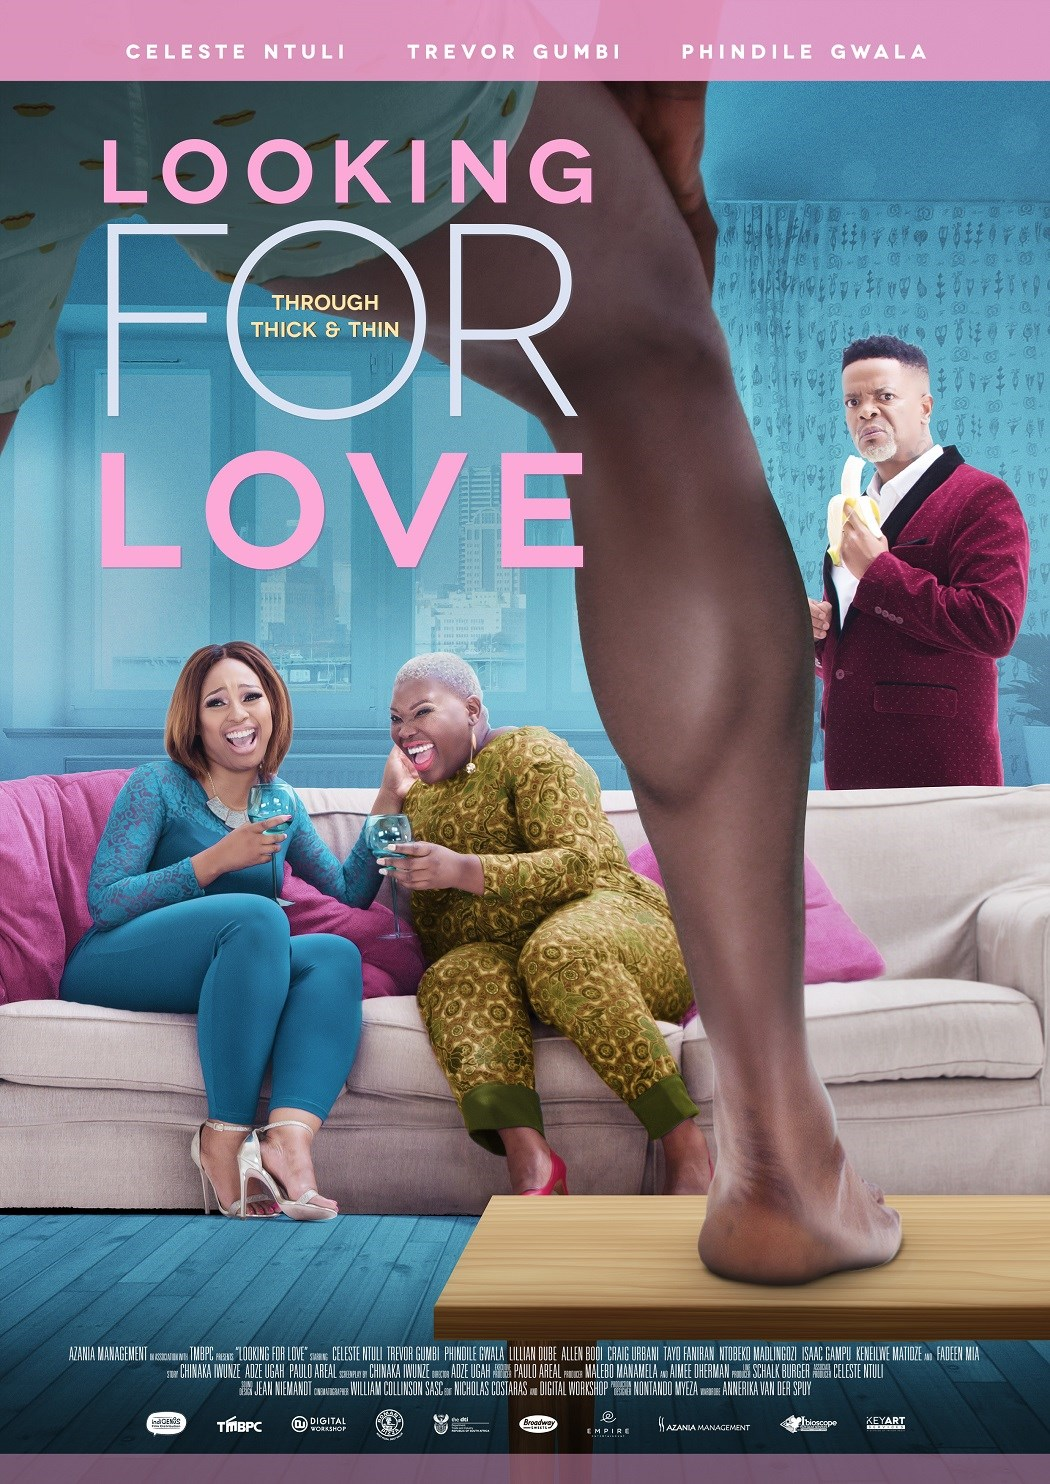 LOOKING FOR LOVE now showing at Cavendish Square